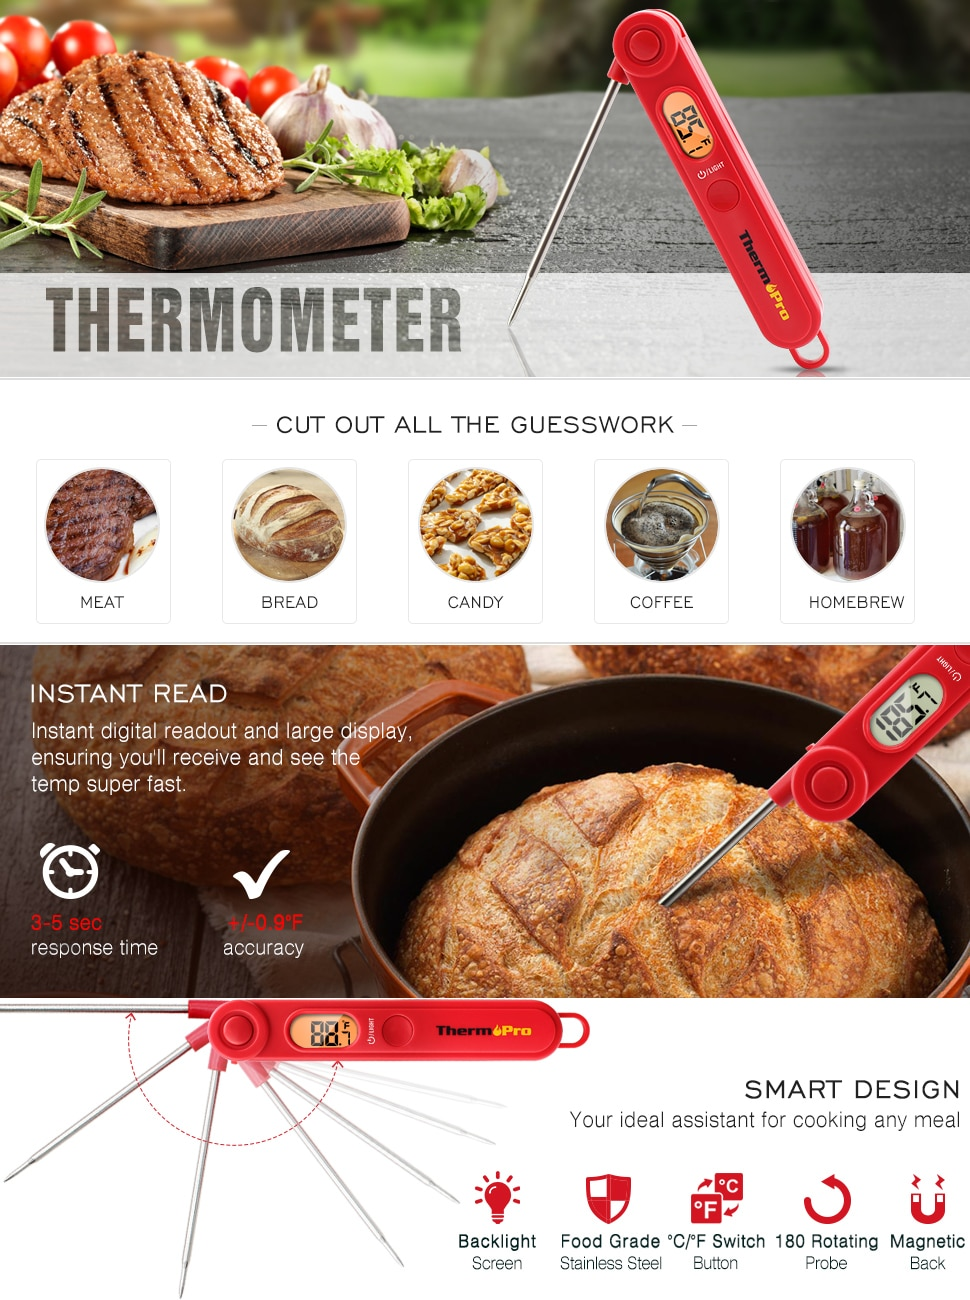 ThermoPro TP03 Smart Design for Cooking